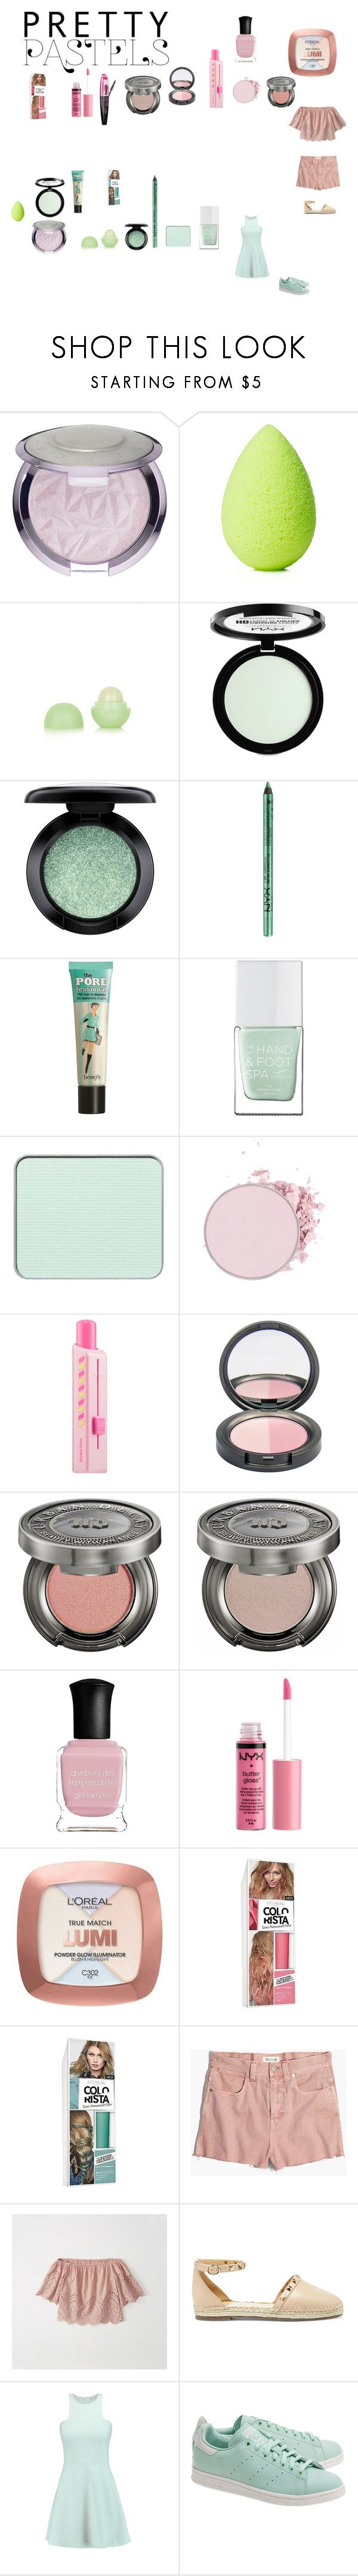 """""""pastel make up"""" by effyswanhaze ❤ liked on Polyvore featuring beauty, beautyblender, Eos, NYX, MAC Cosmetics, Benefit, The Hand & Foot Spa, shu uemura, Sephora Collection and Urban Decay"""